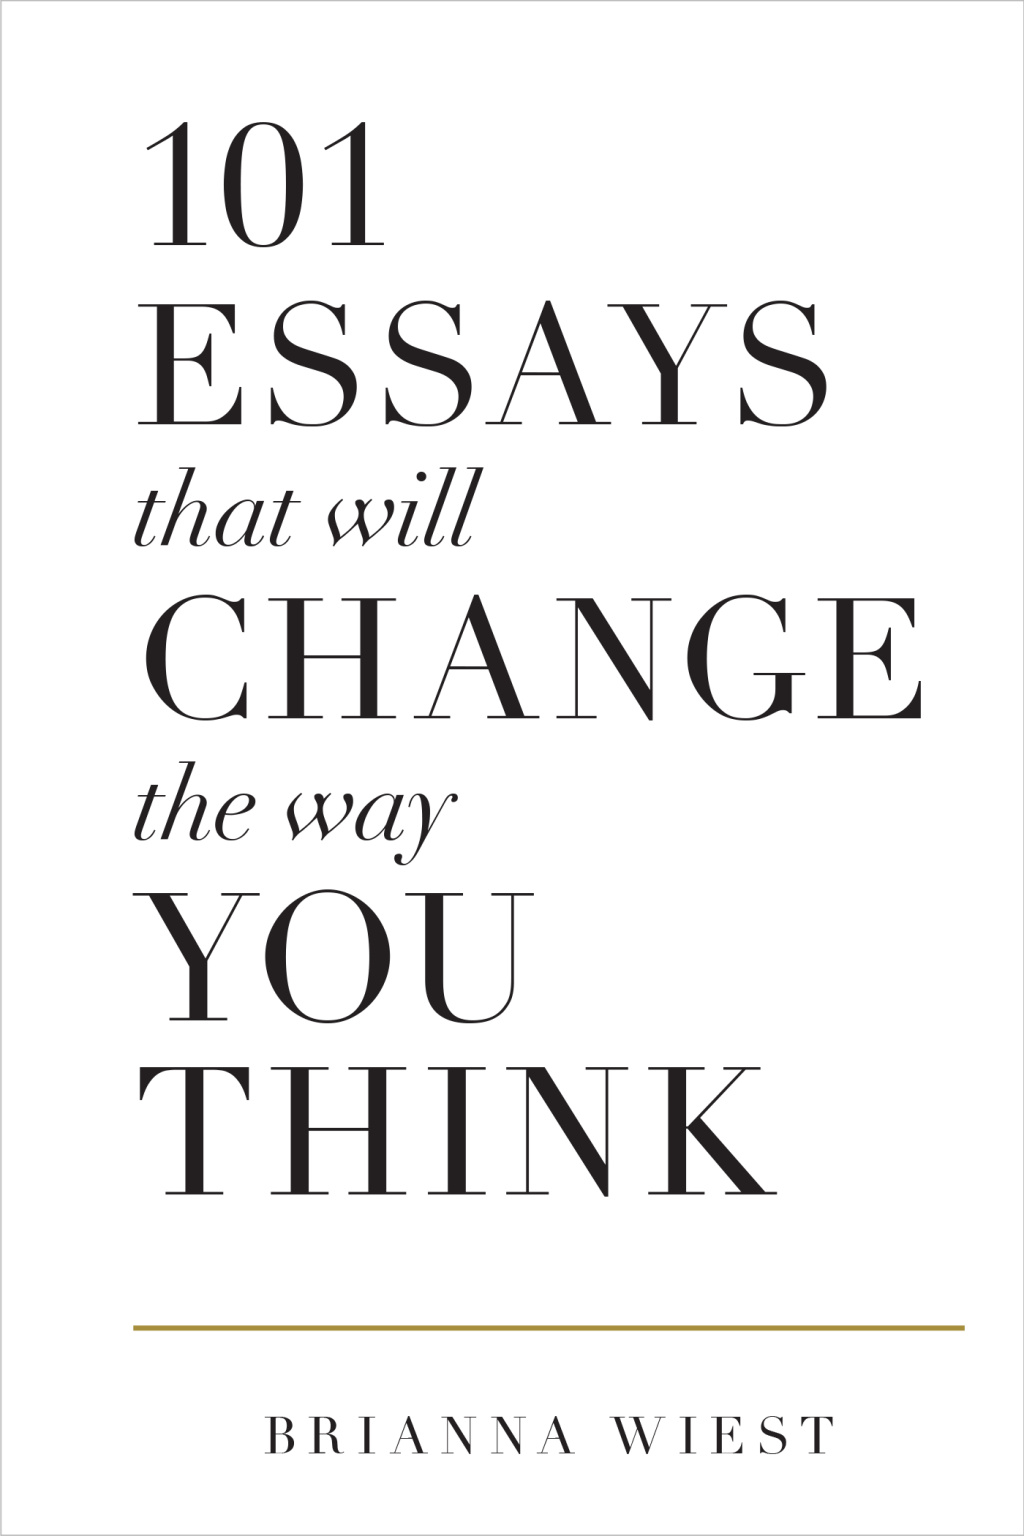 002 Essays That Will Change The Way You Think Essay Example Book Cover 1400x210015resize10241536quality95stripallcrop1 Unusual 101 Depository Barnes And Noble Review Full